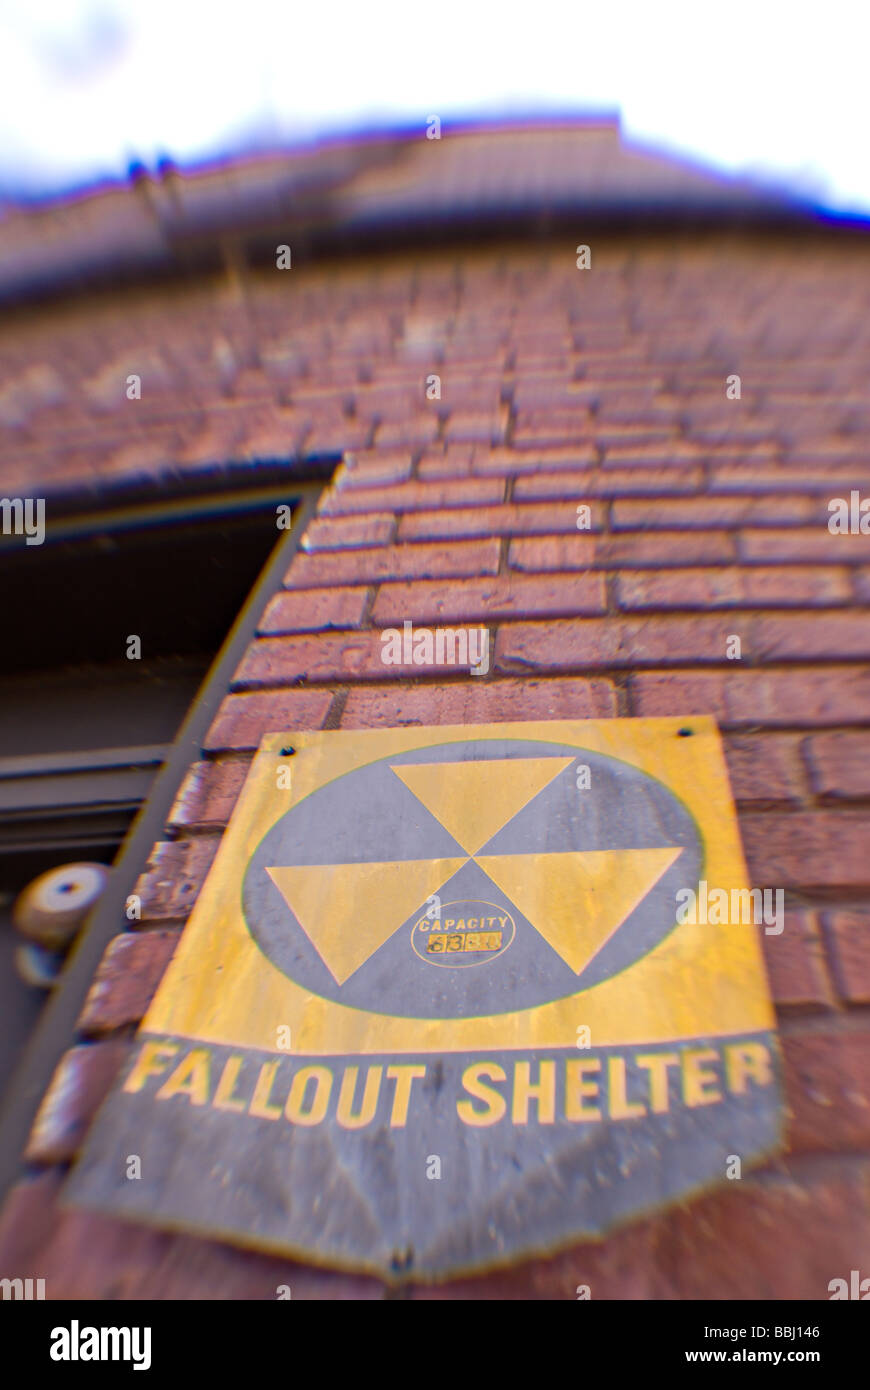 Nuclear war fallout shelter sign on an old worn out building in Dubuque, IA Stock Photo